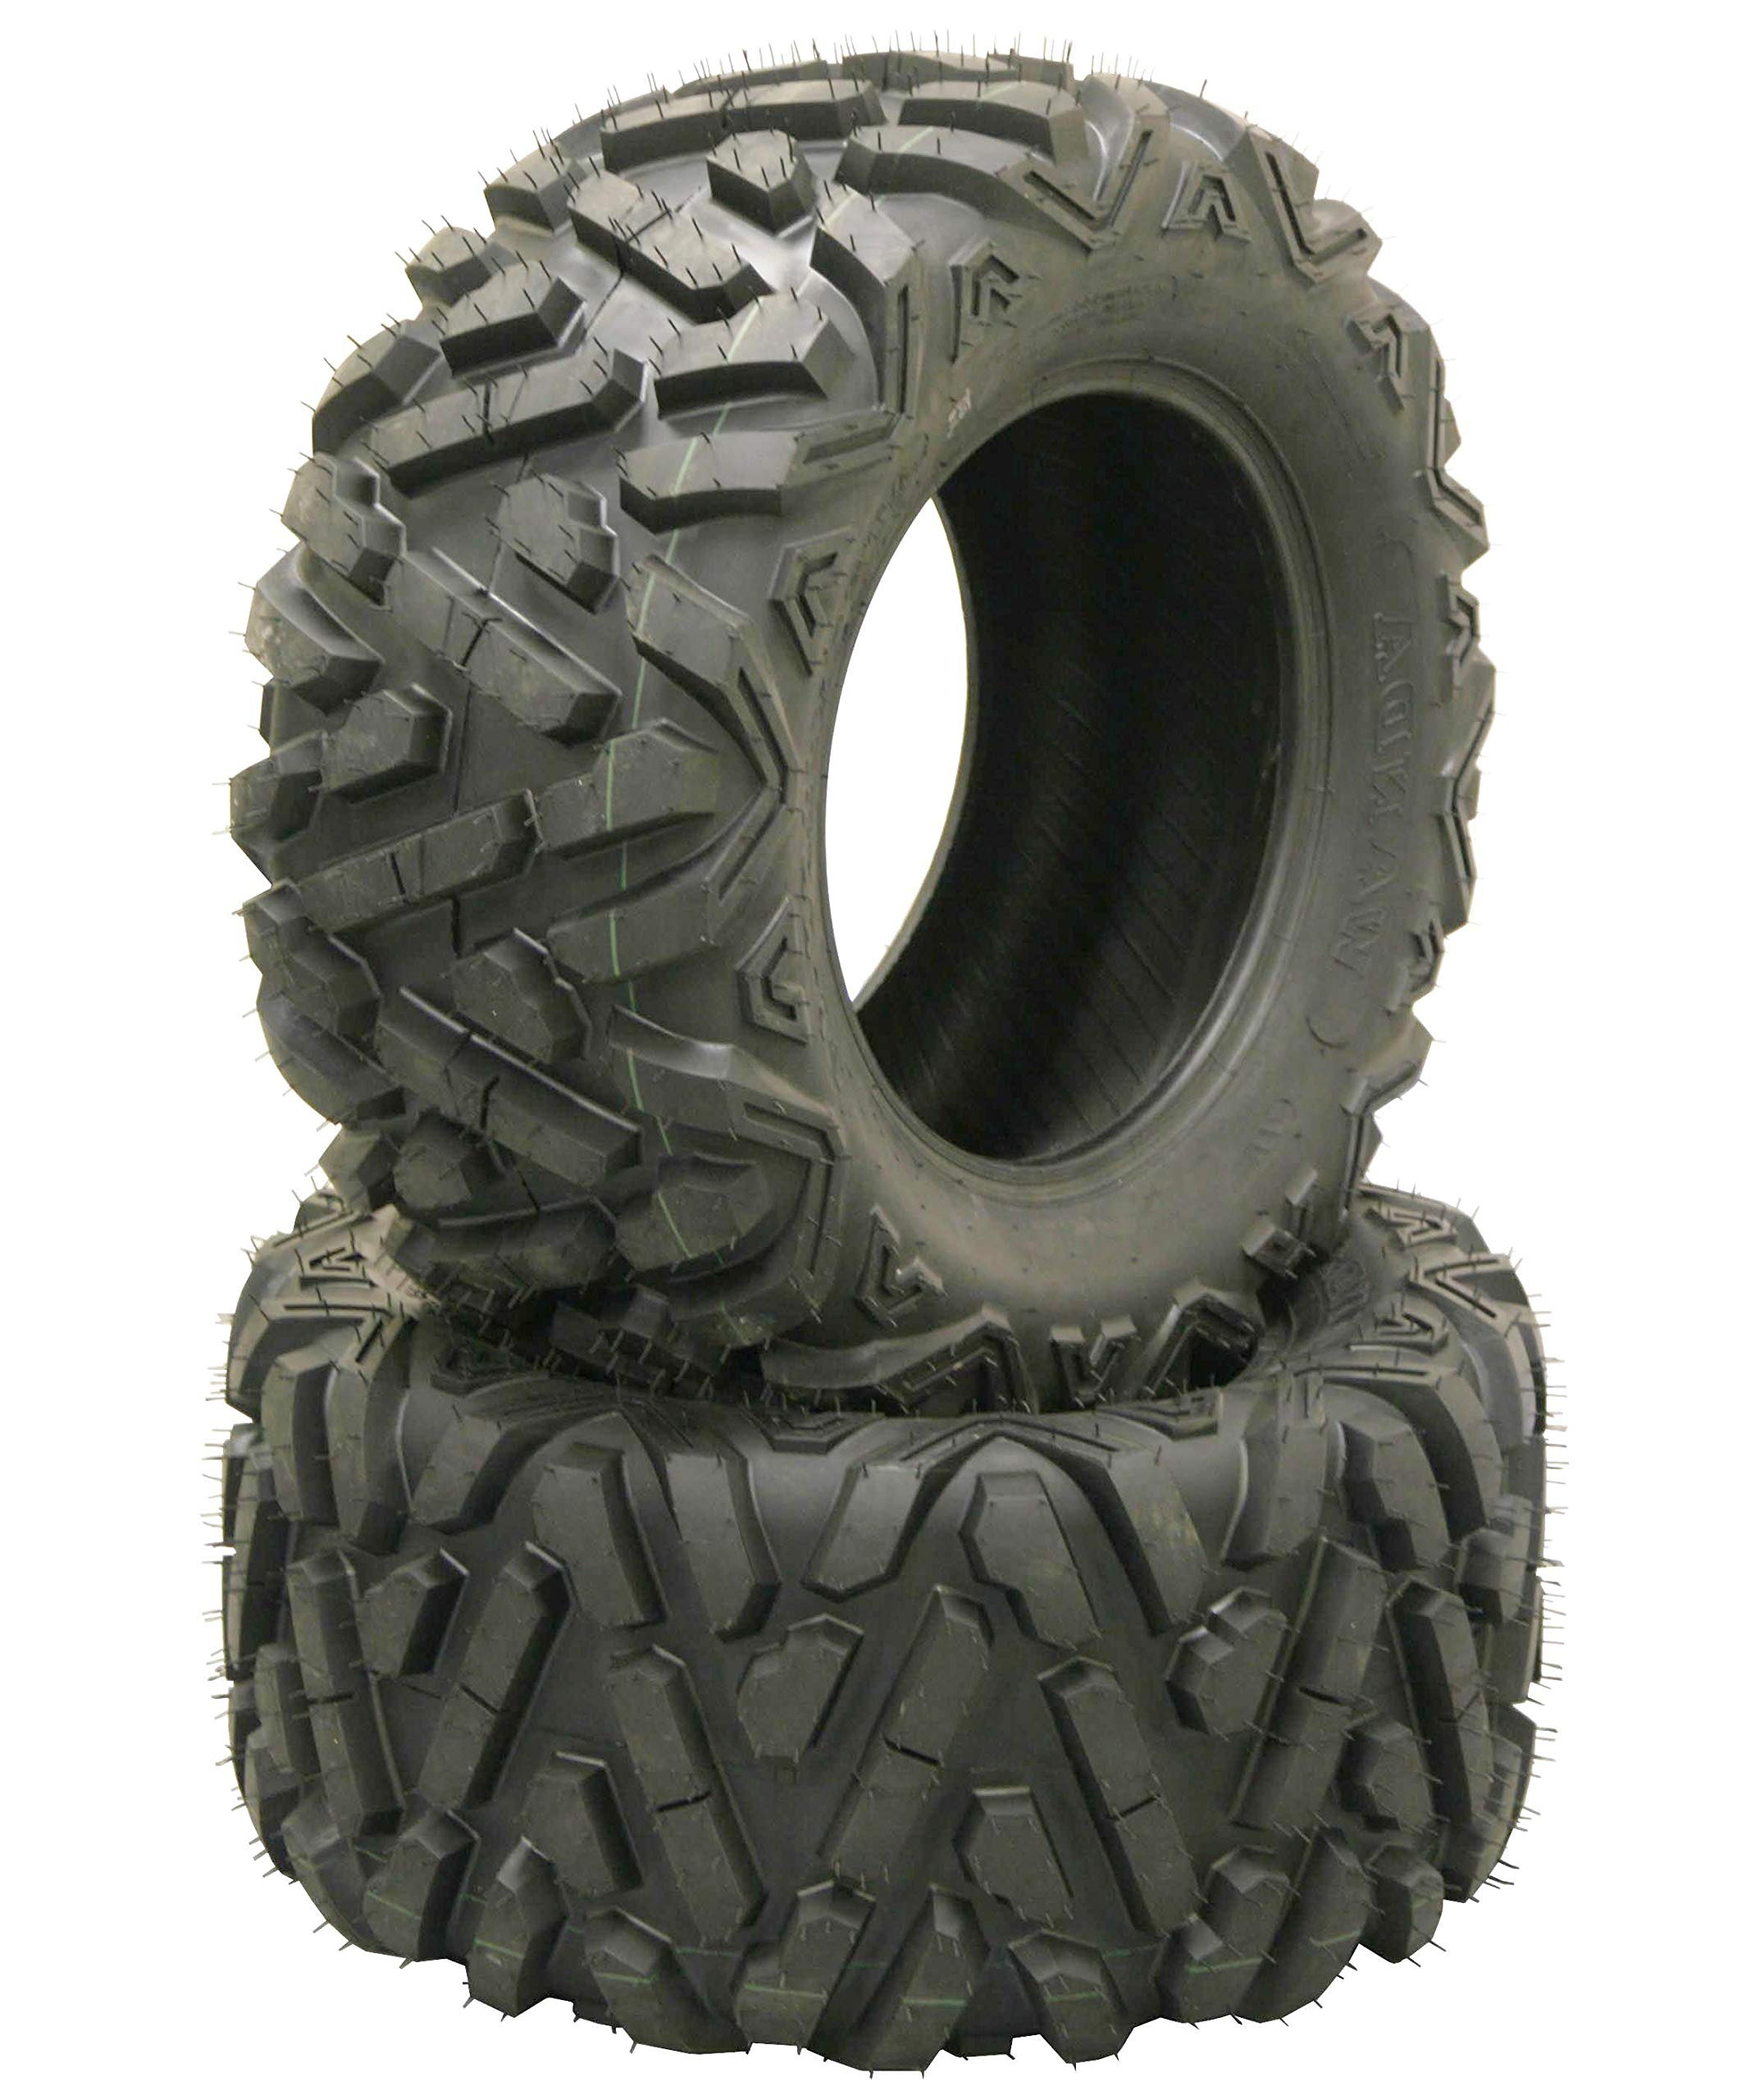 Set of 2 WANDA ATV UTV Tires 27x11-12 27x11x12 6PR Big Horn Style …